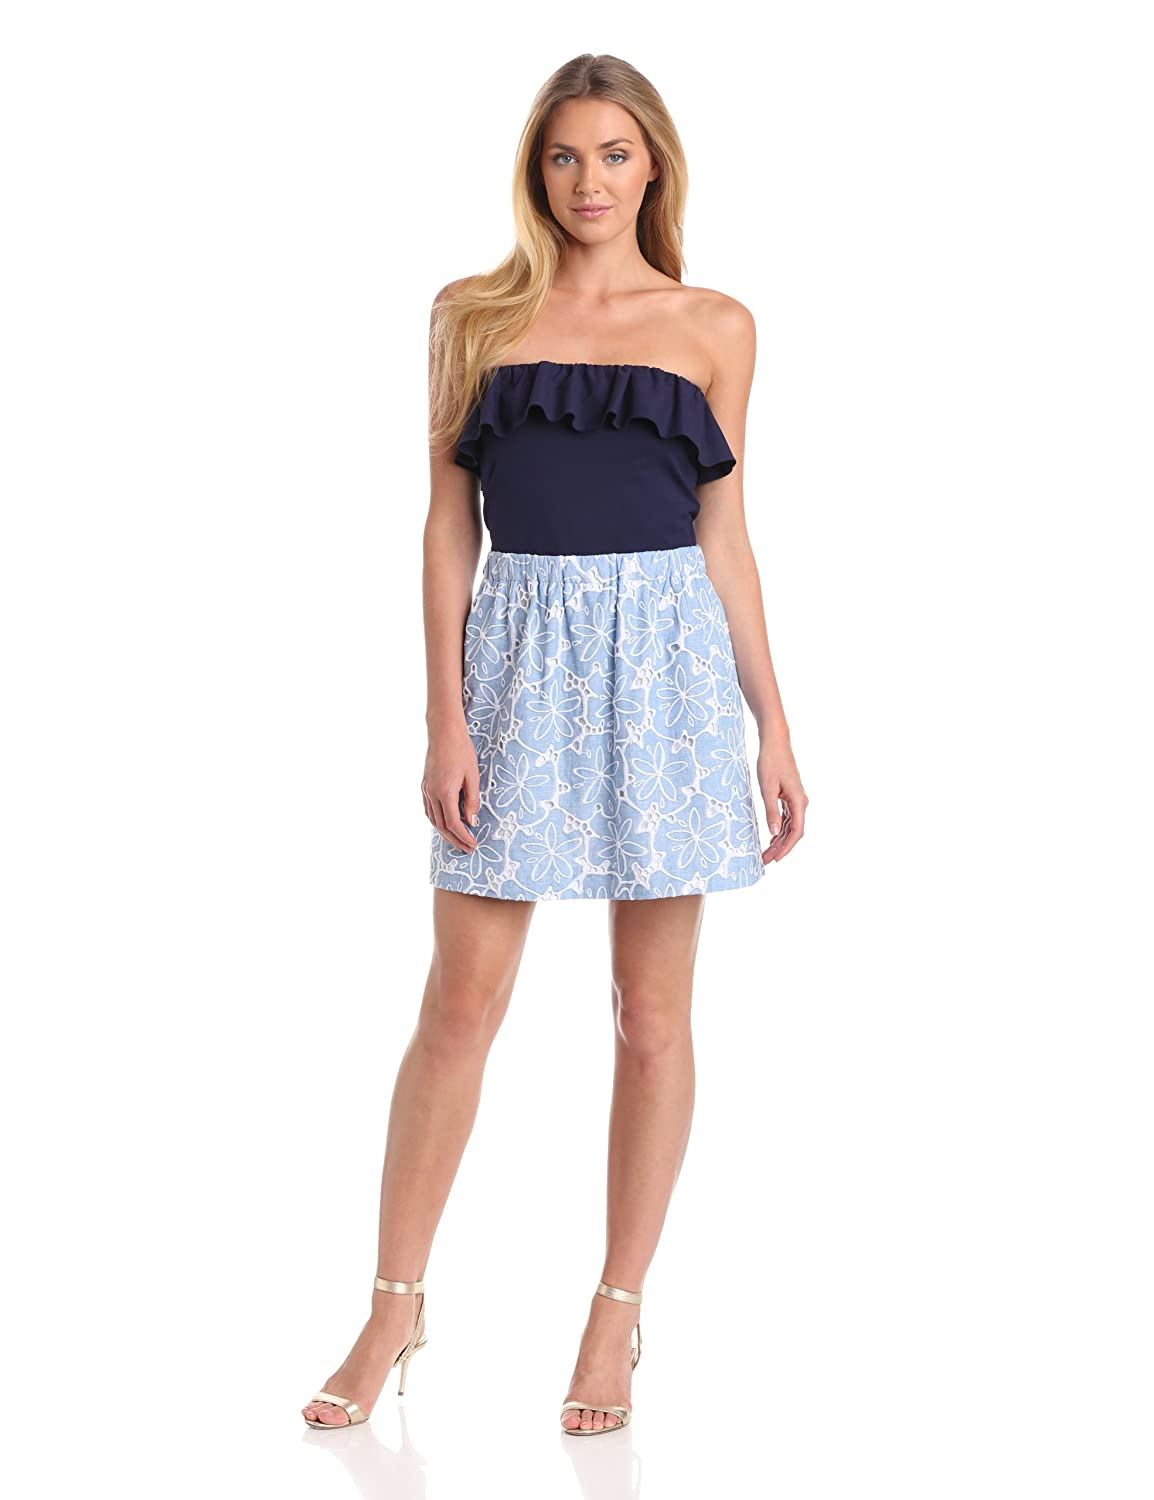 Lilly Pulitzer Dresses For Women Lilly Pulitzer Women s Athens